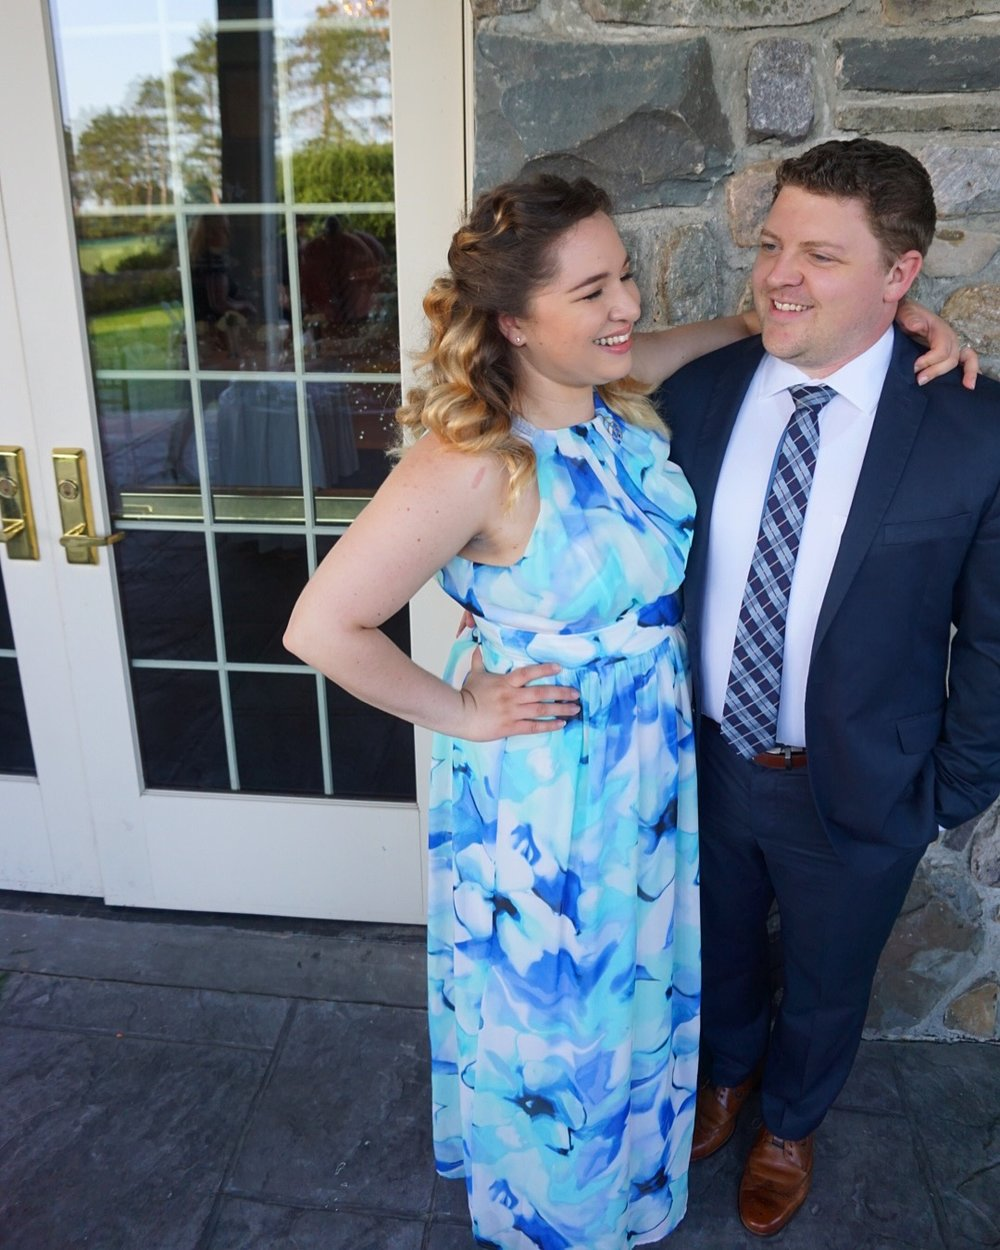 That's us smiling. Feeling great and surviving our first wedding where we only ate Whole 30 compliant.